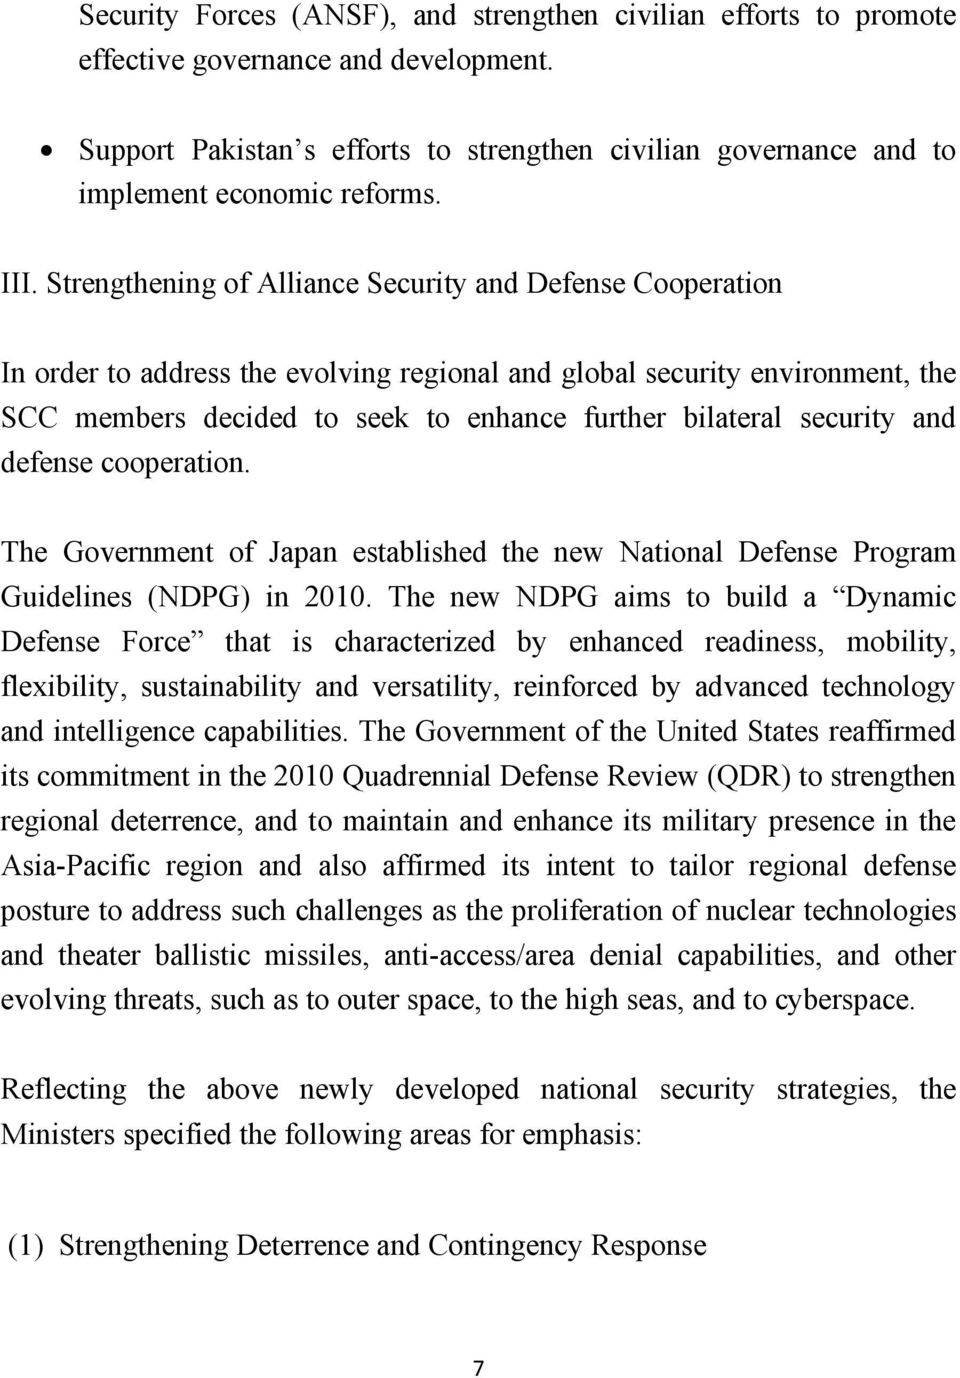 security and defense cooperation. The Government of Japan established the new National Defense Program Guidelines (NDPG) in 2010.